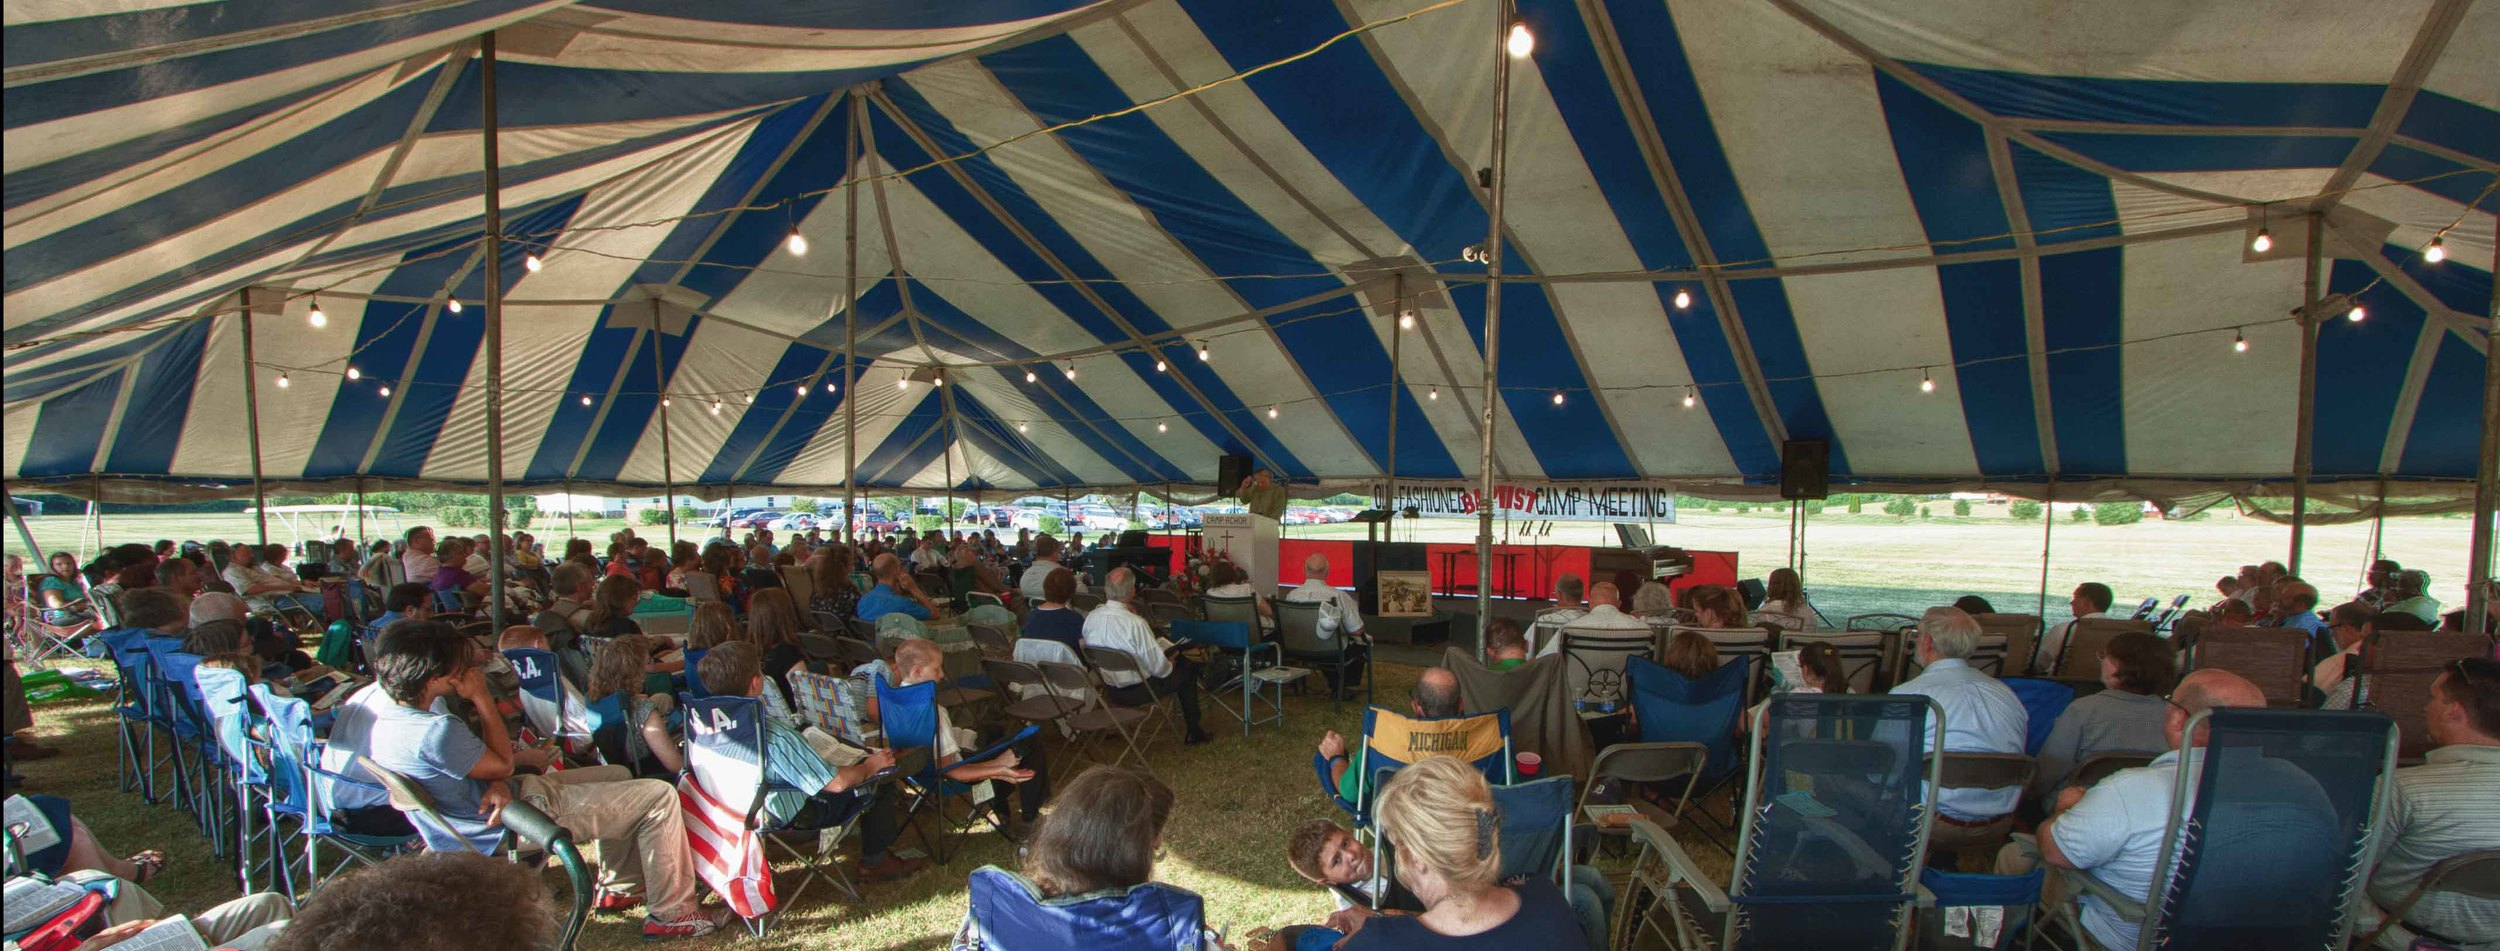 Under The Tent, 2012